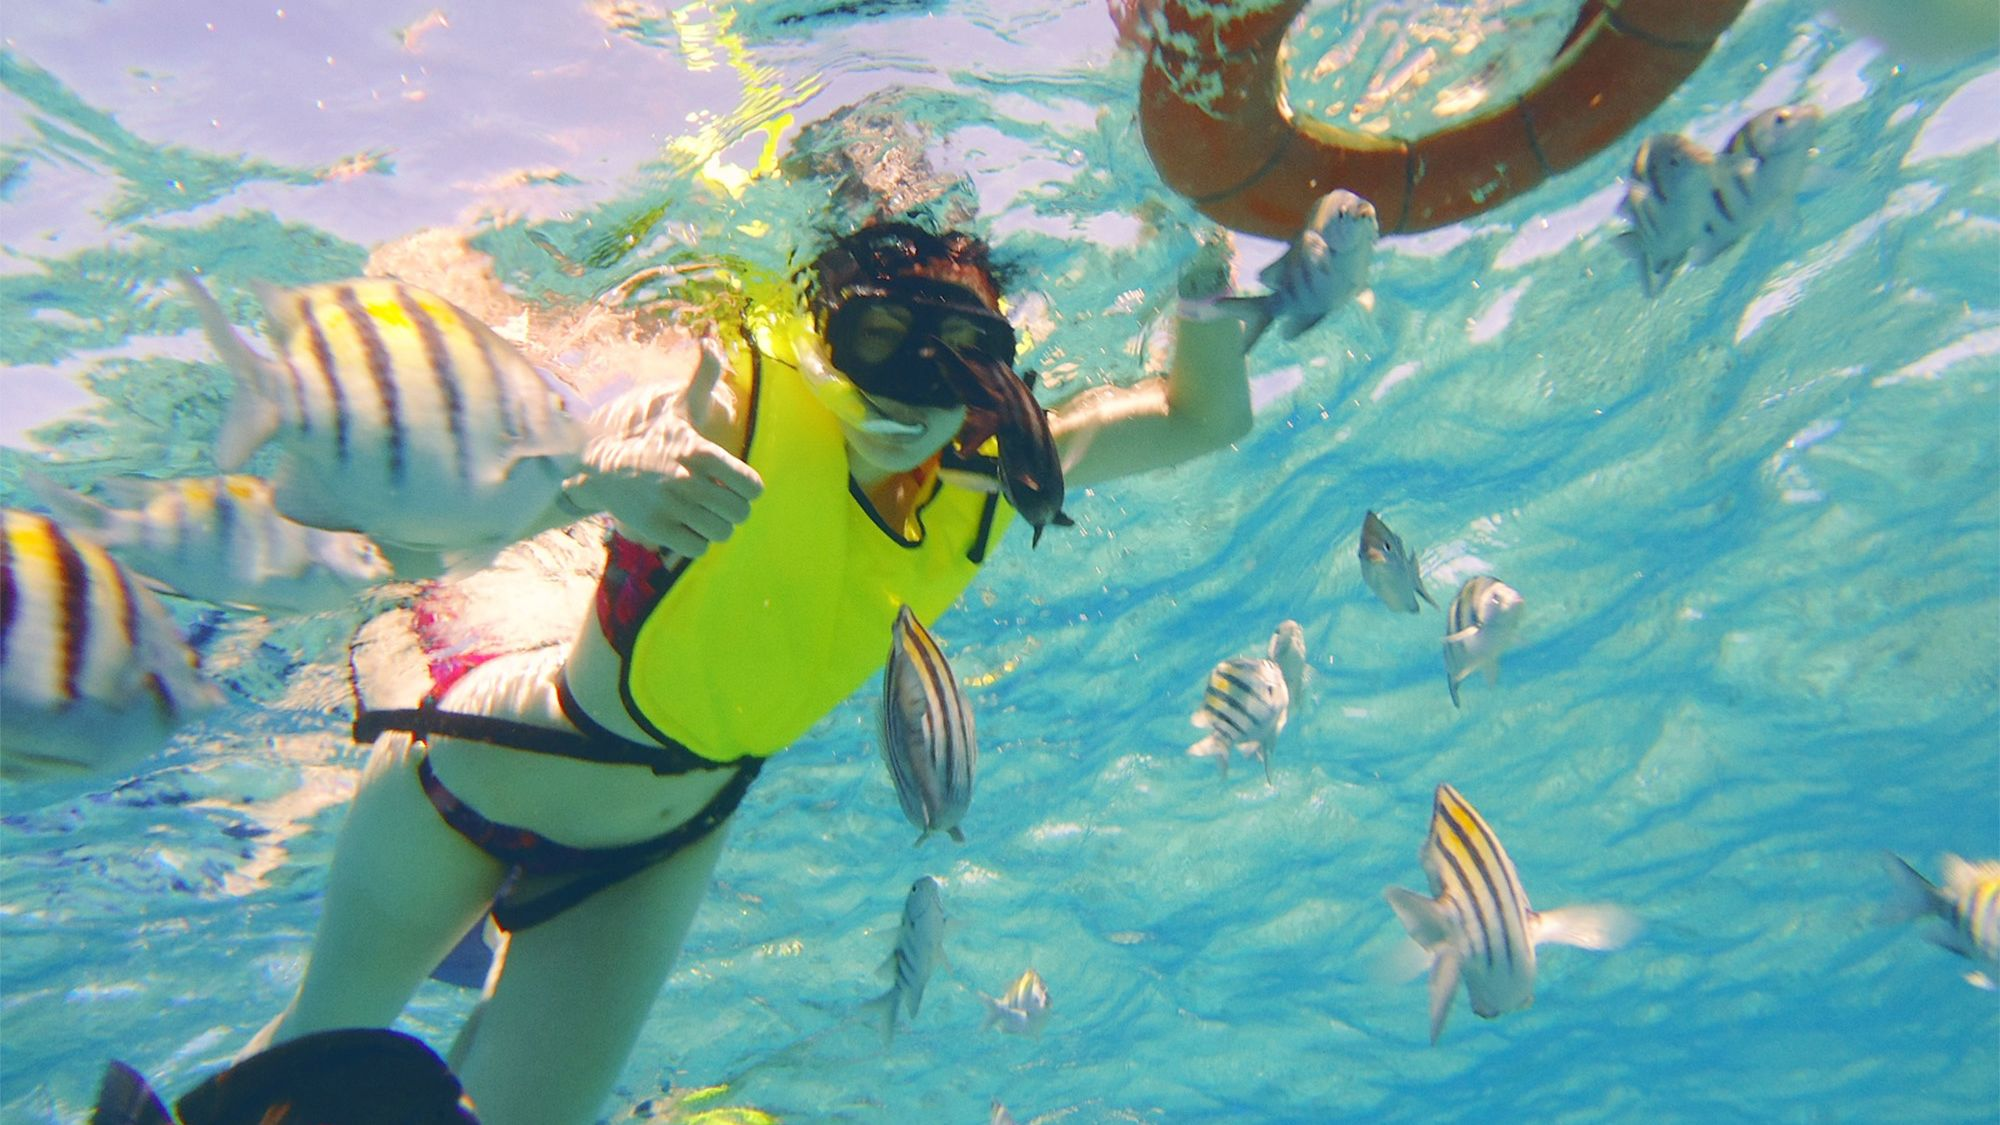 Snorkeler surrounded by fish in Cozumel